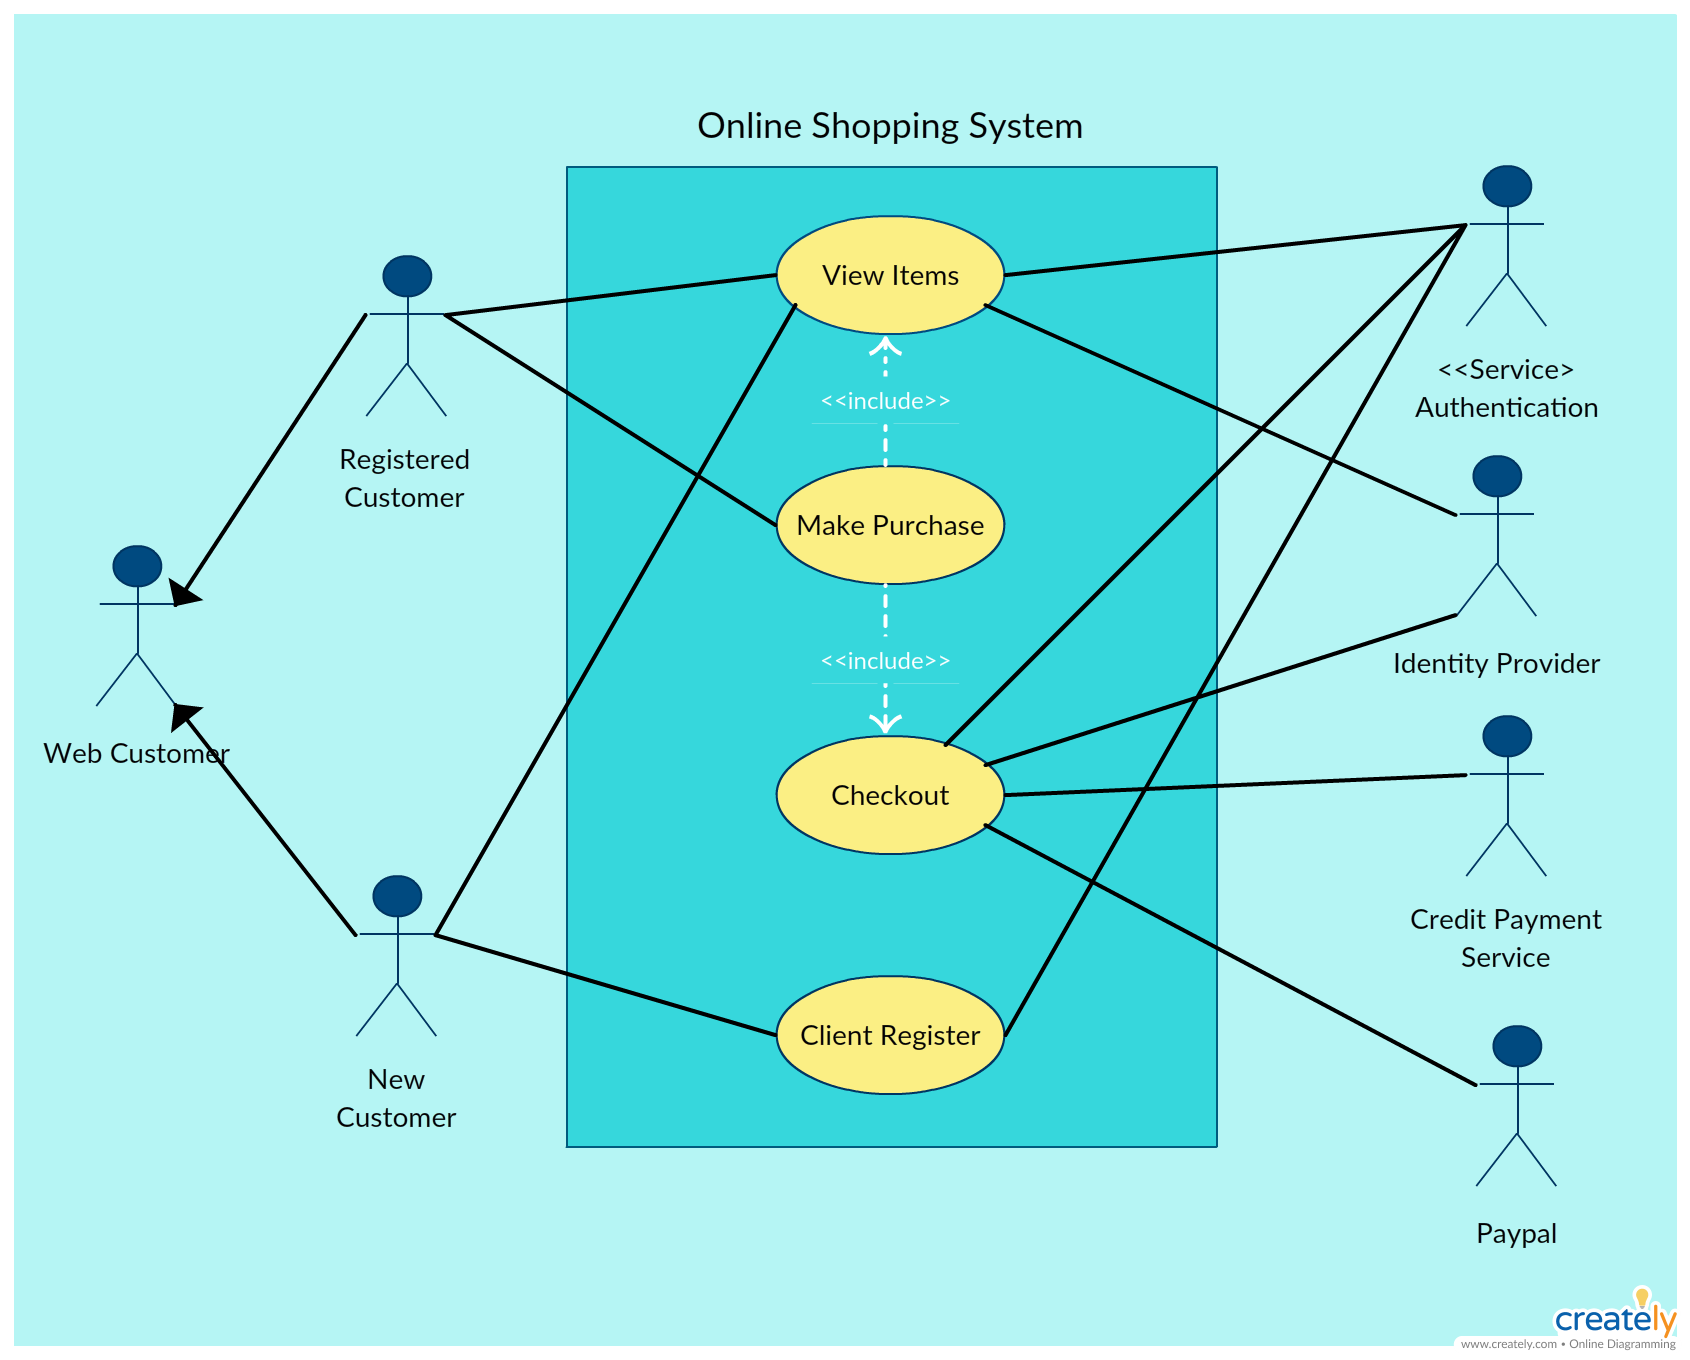 medium resolution of online shopping system use case diagram use case diagram for online shopping system is used to understand different roles actors of various levels